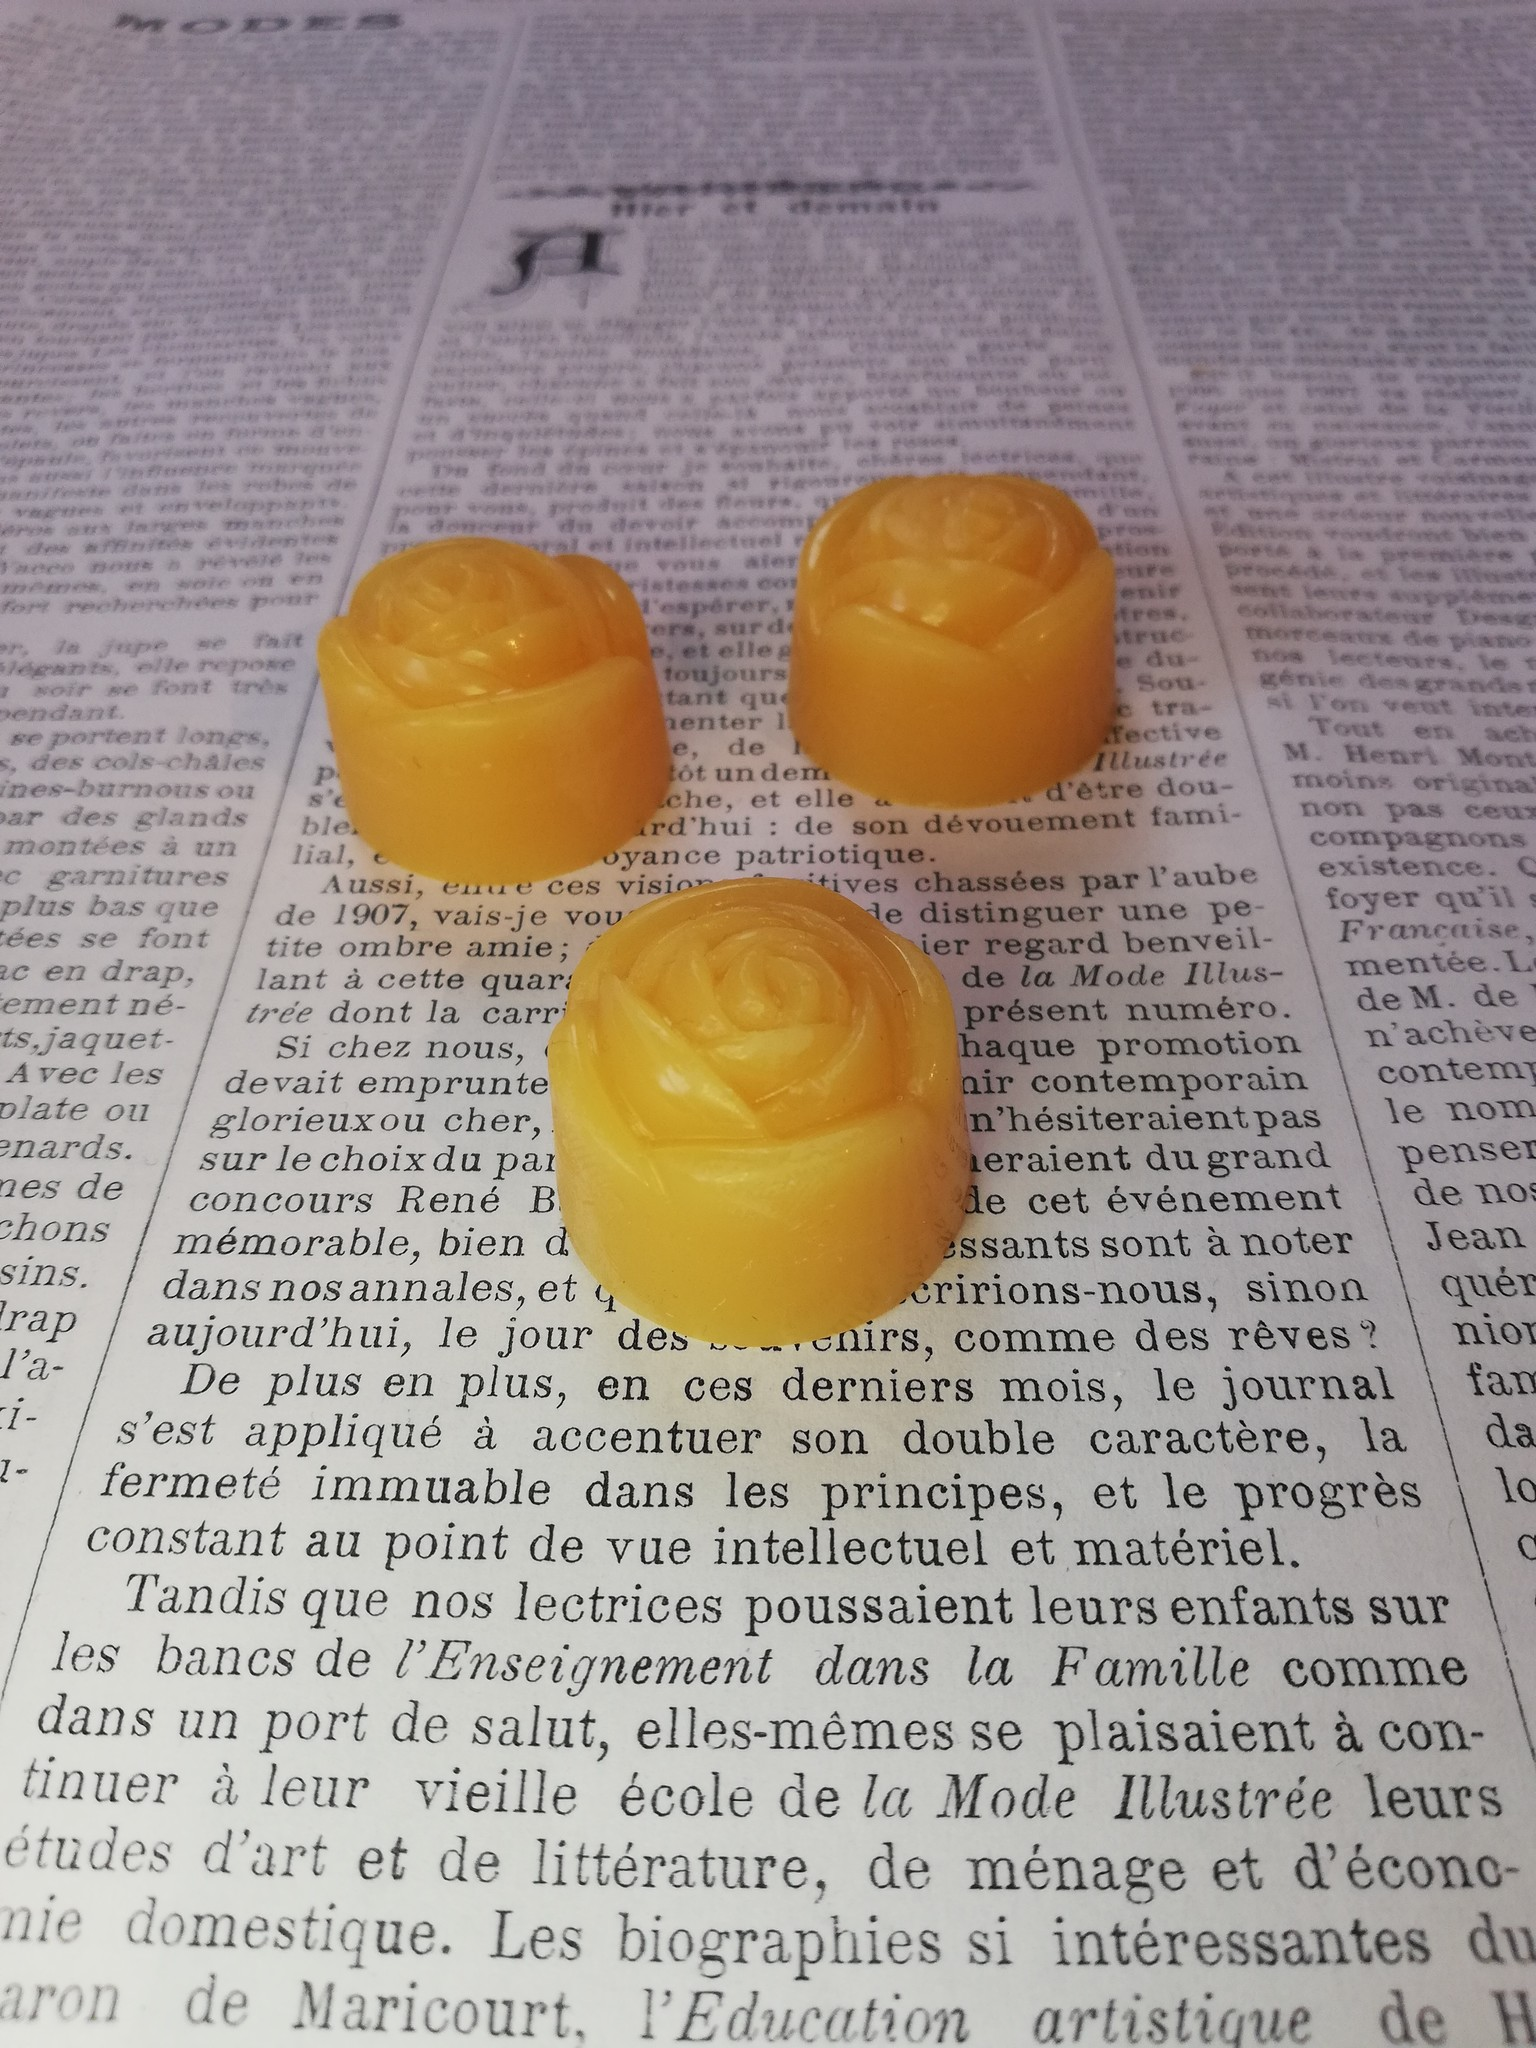 Pure beeswax roses for handsewing.